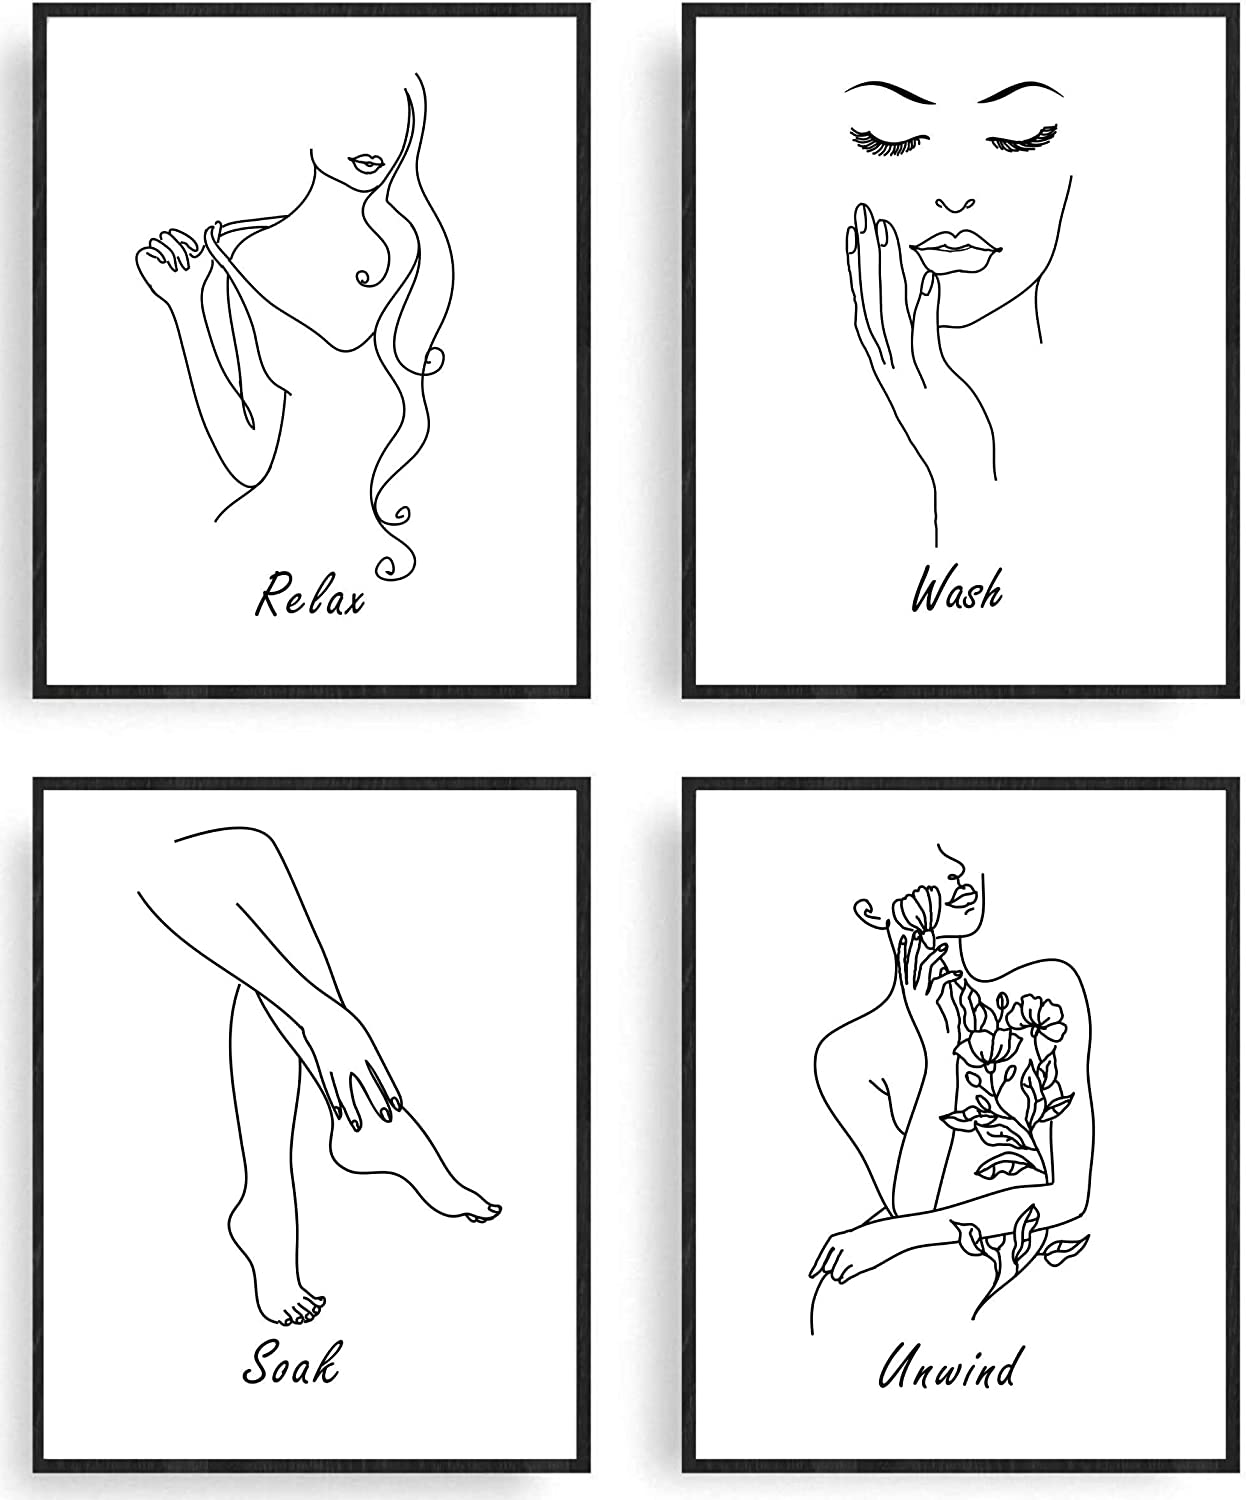 "Minimalistic Wall Art - Wash Soak Relax Unwind - Black & White Abstract Prints – Unframed – Minimalist Room Decor Posters | Minimal One Line Drawing of Woman Female Body Painting for Relaxation, Meditation, Bathroom | Set of 4 (8"" x 10"")"